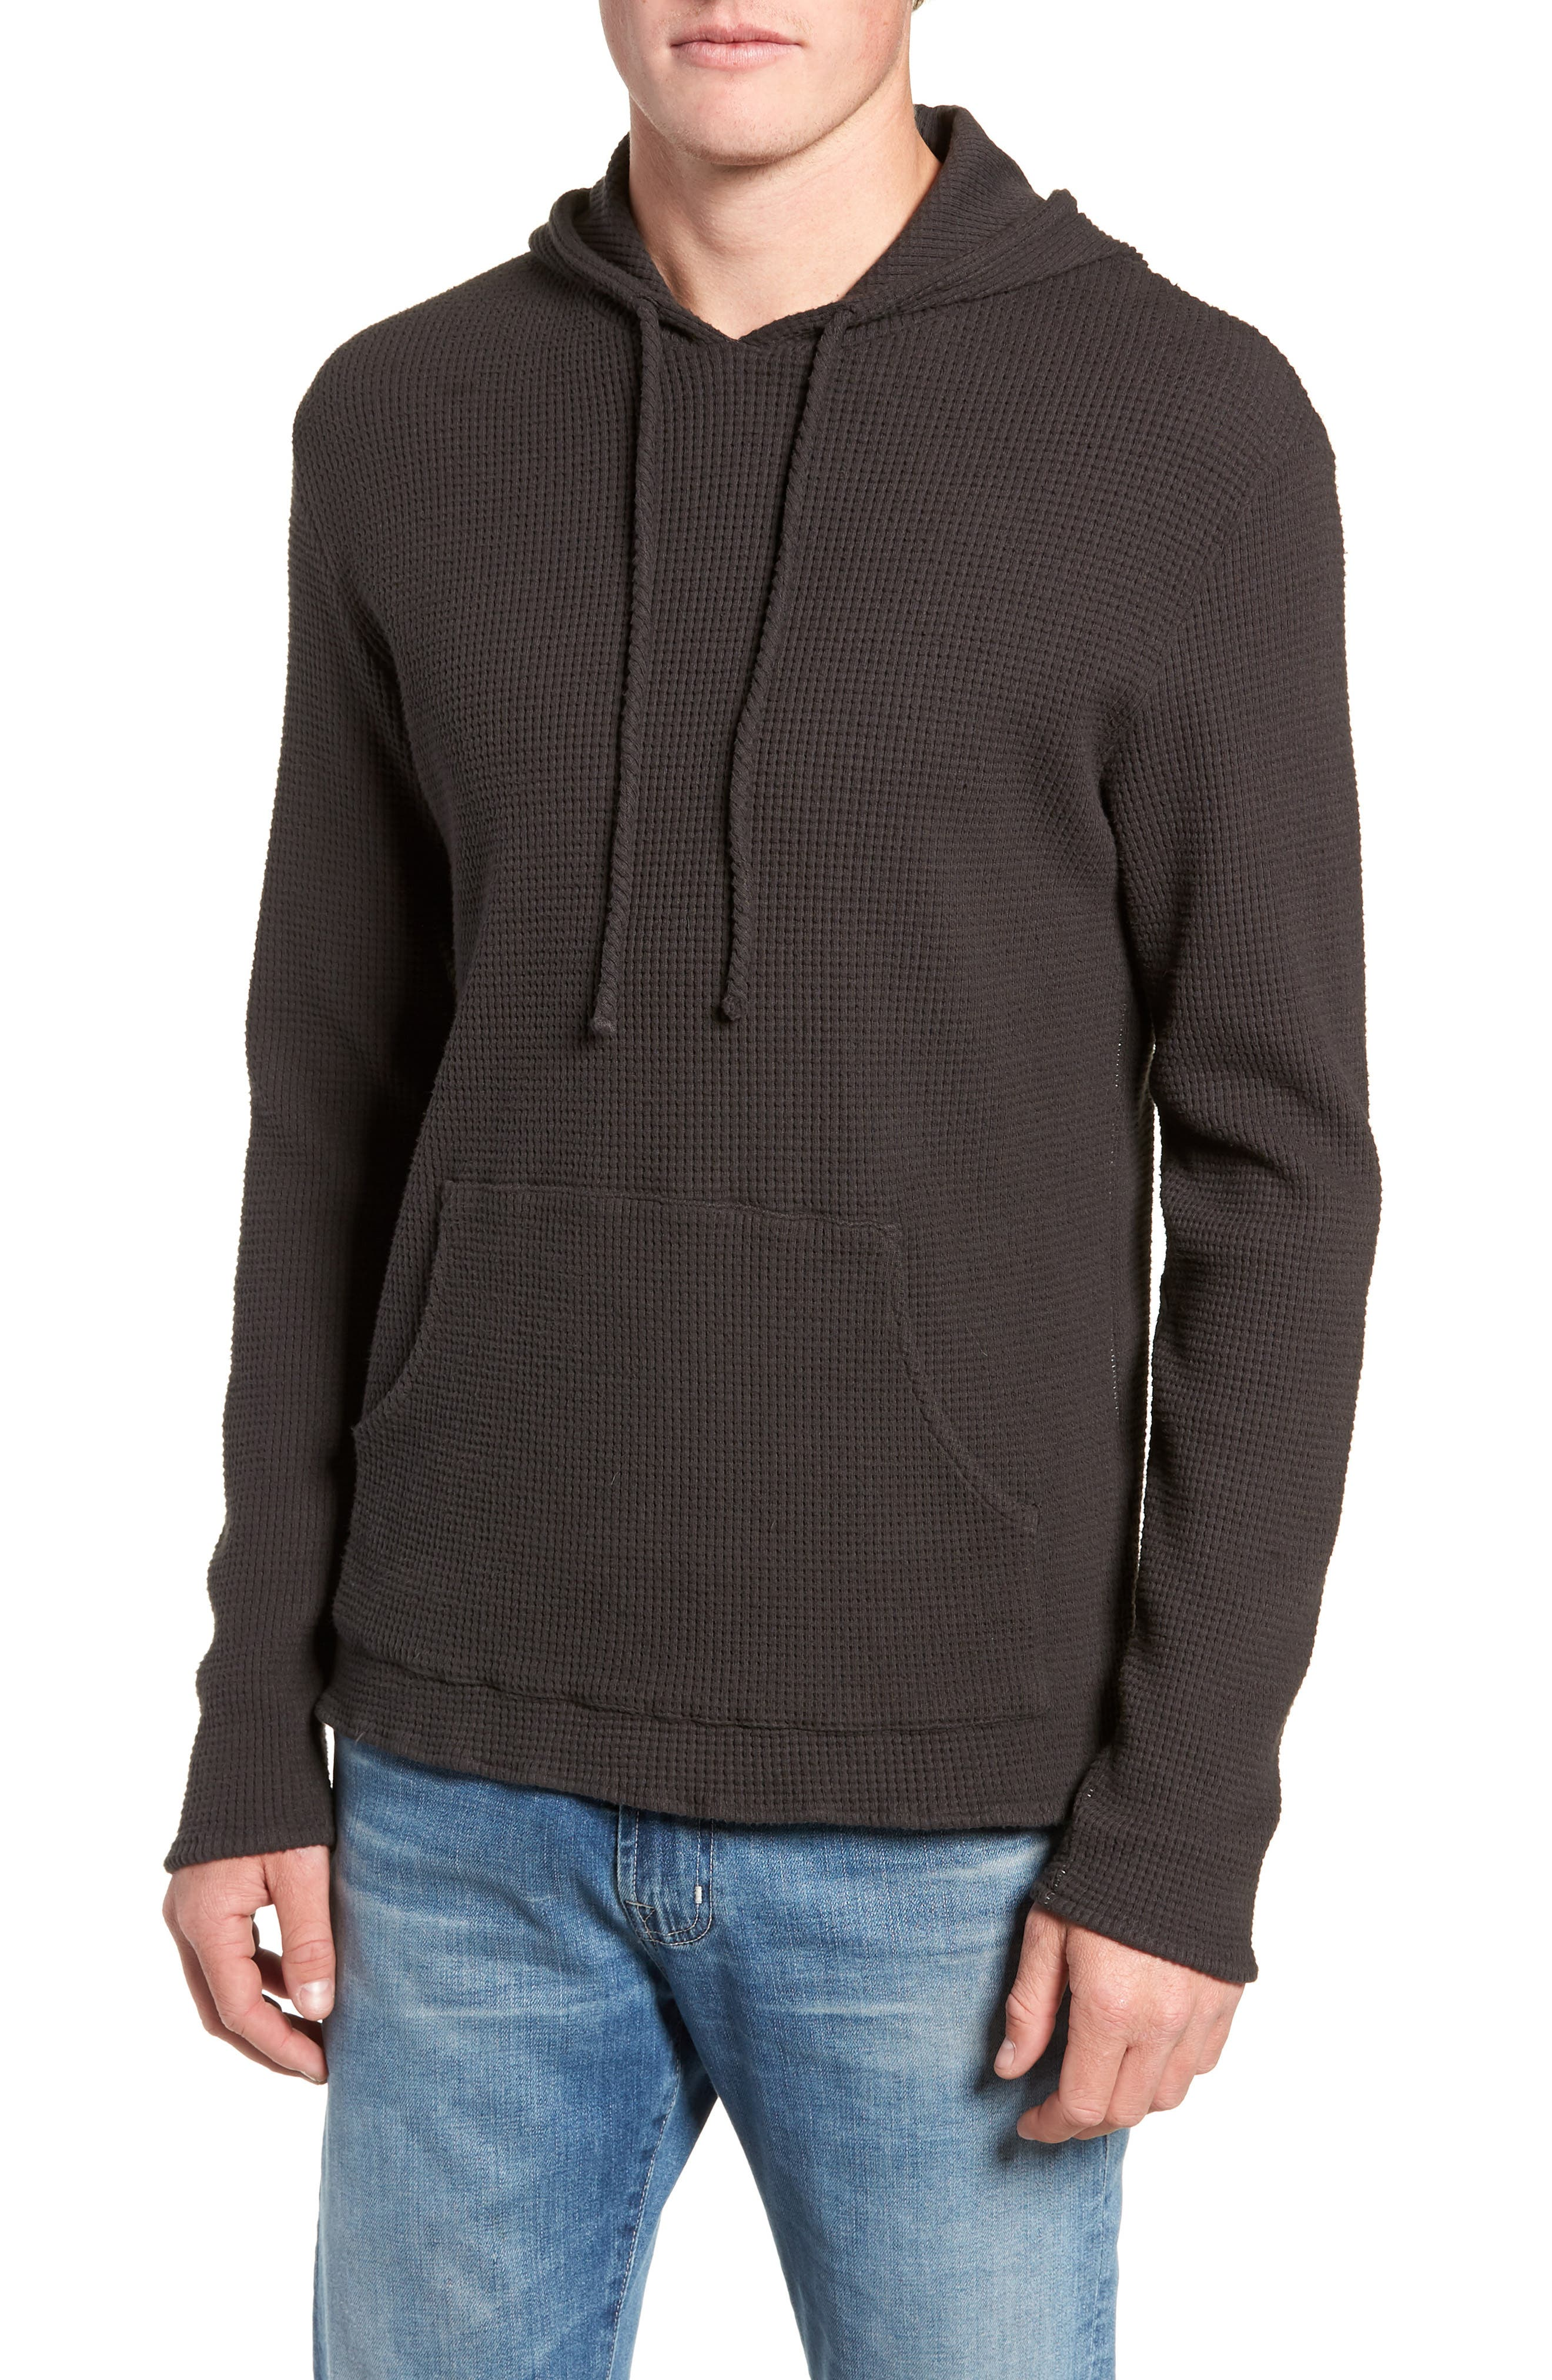 Thermal Knit Pullover Hoodie,                             Main thumbnail 1, color,                             020